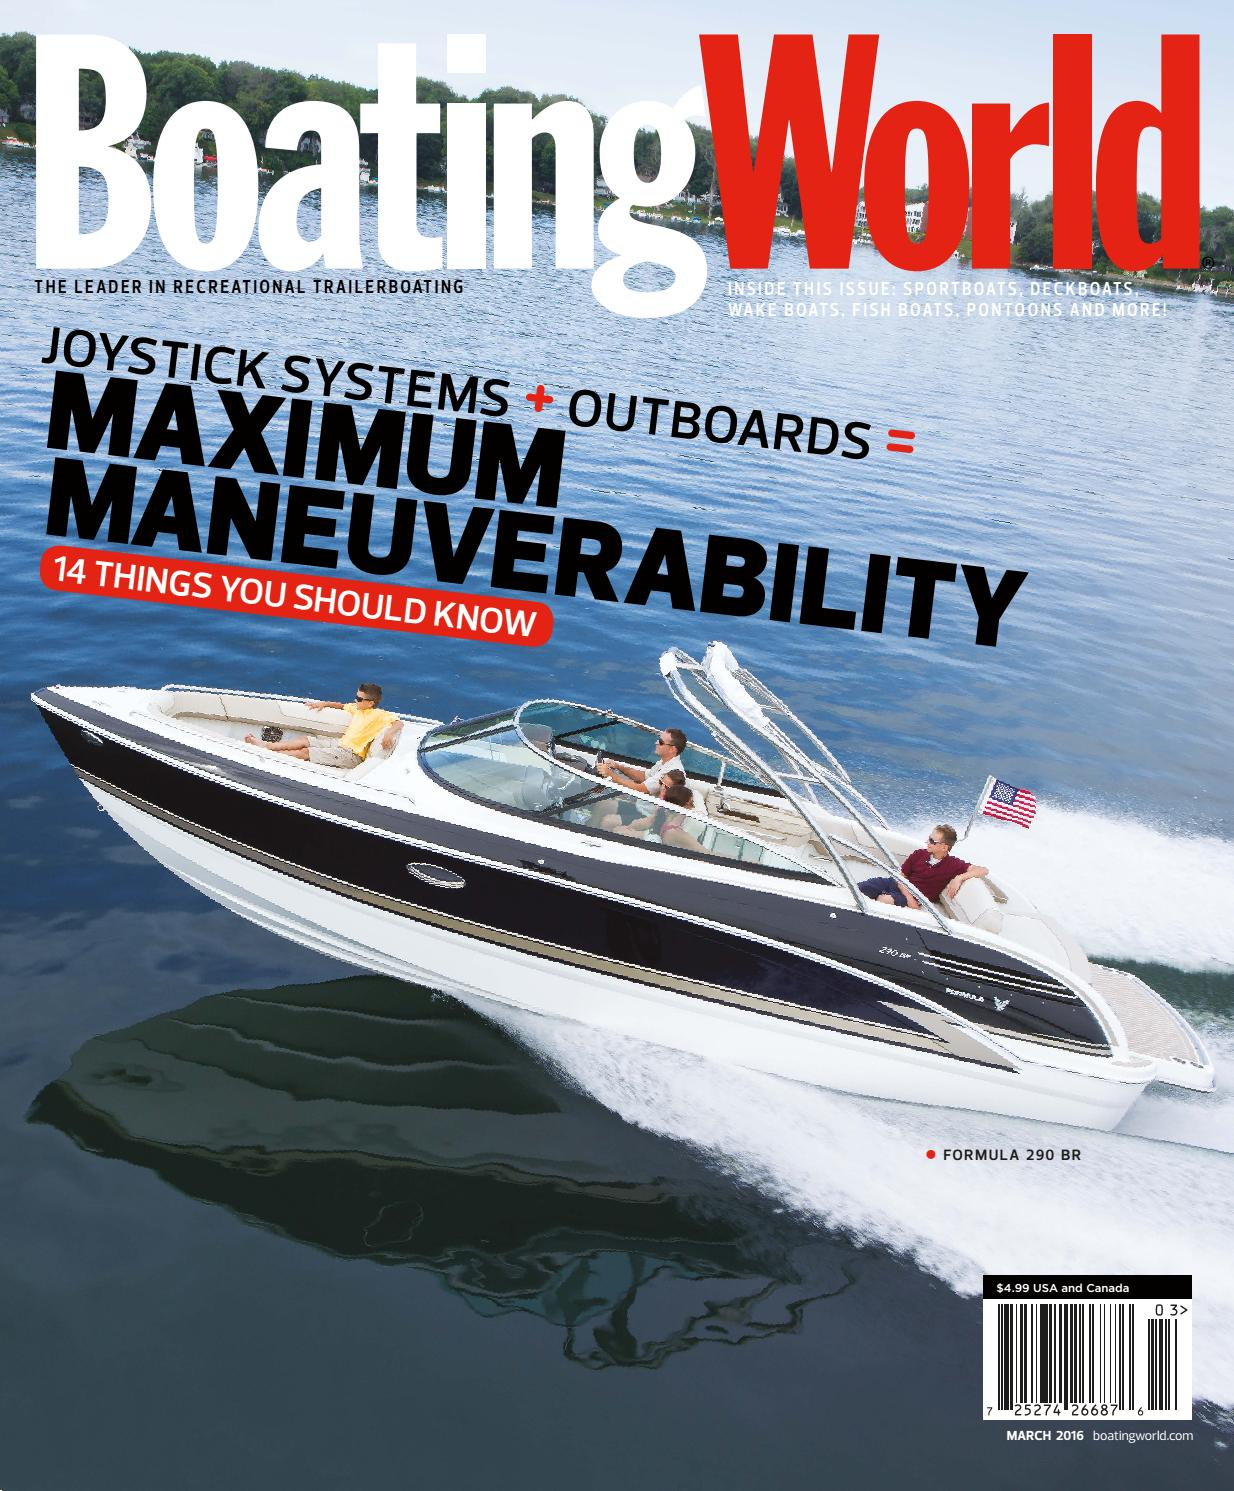 page_1 march 2016 boating world magazine by duncan mcintosh company issuu  at aneh.co